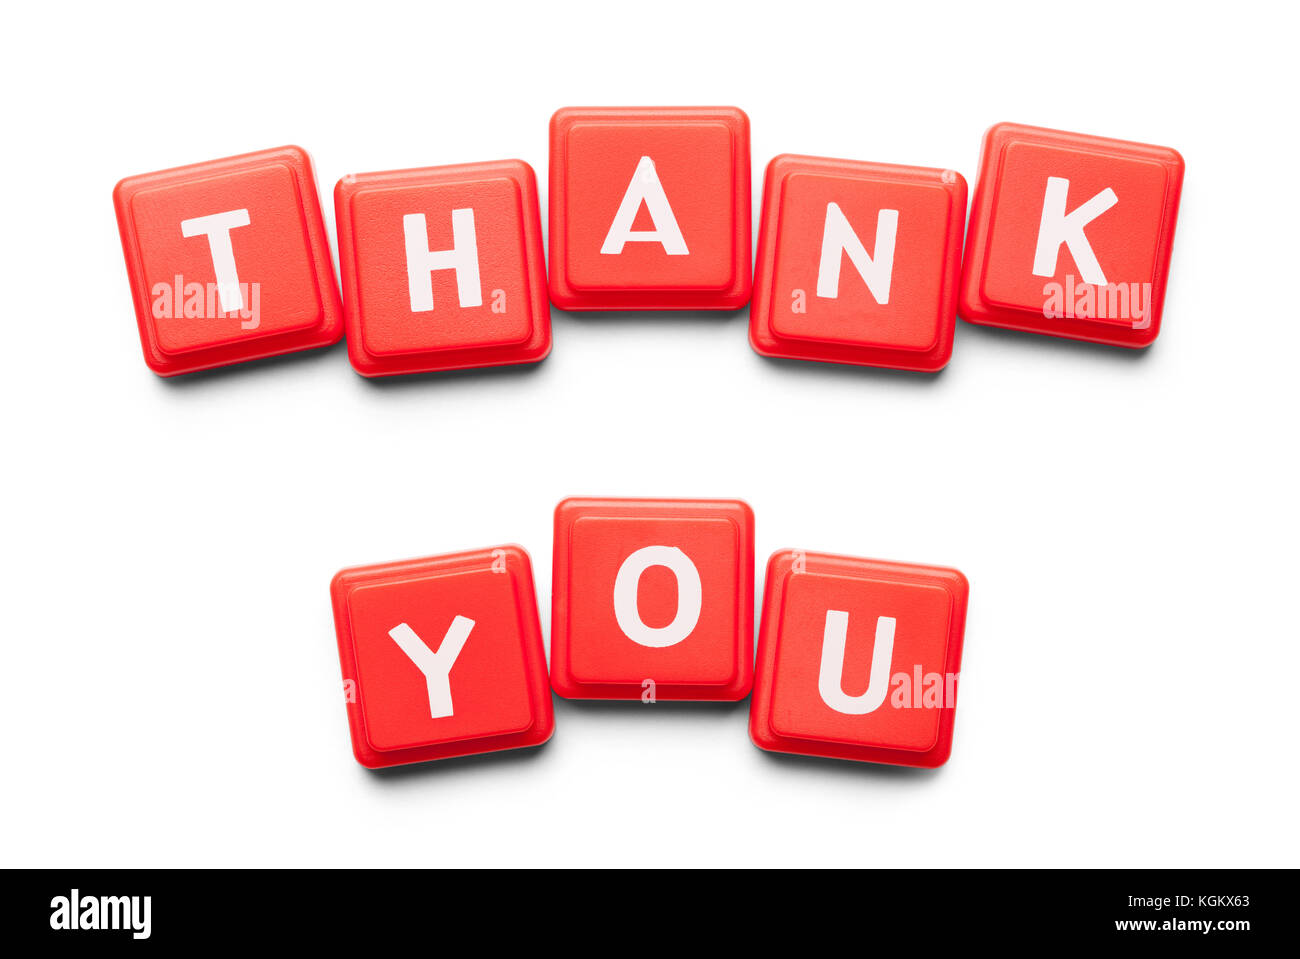 Thank You Spelled with Wood Tiles Isolated on a White Background. - Stock Image